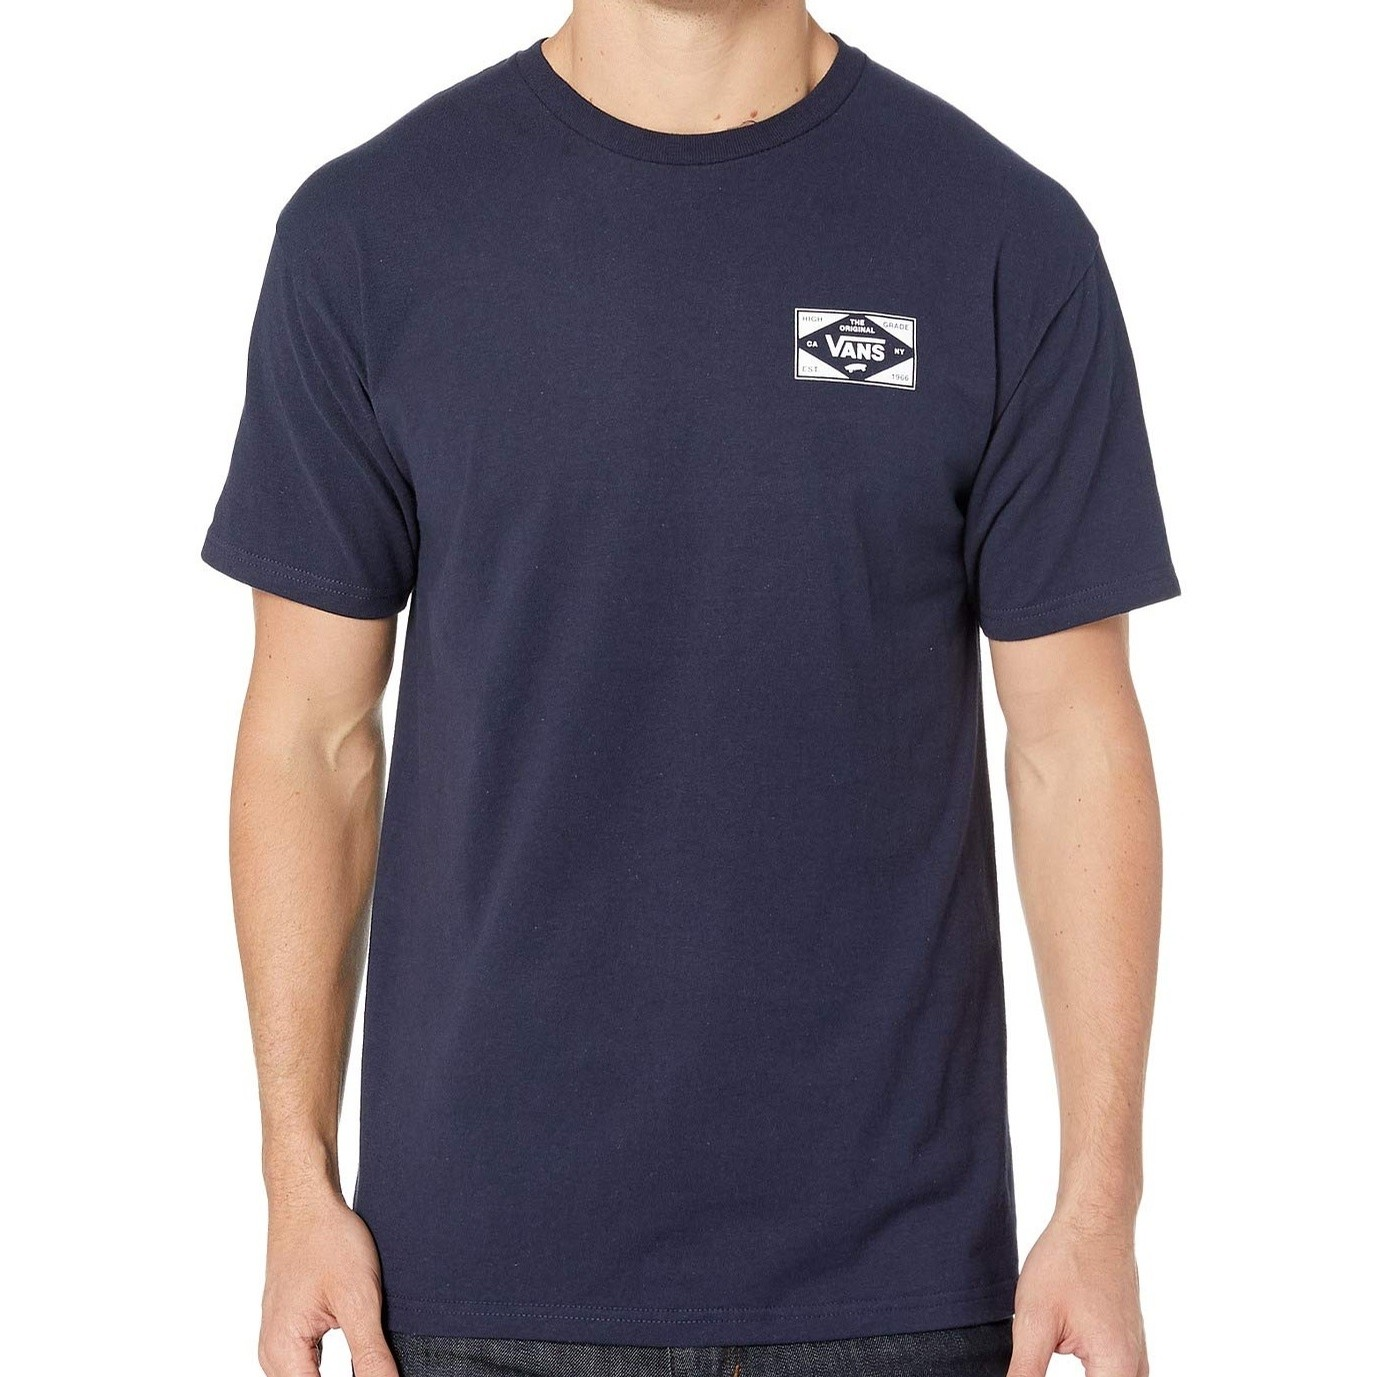 Best In Class S/S Tee (Navy/White)